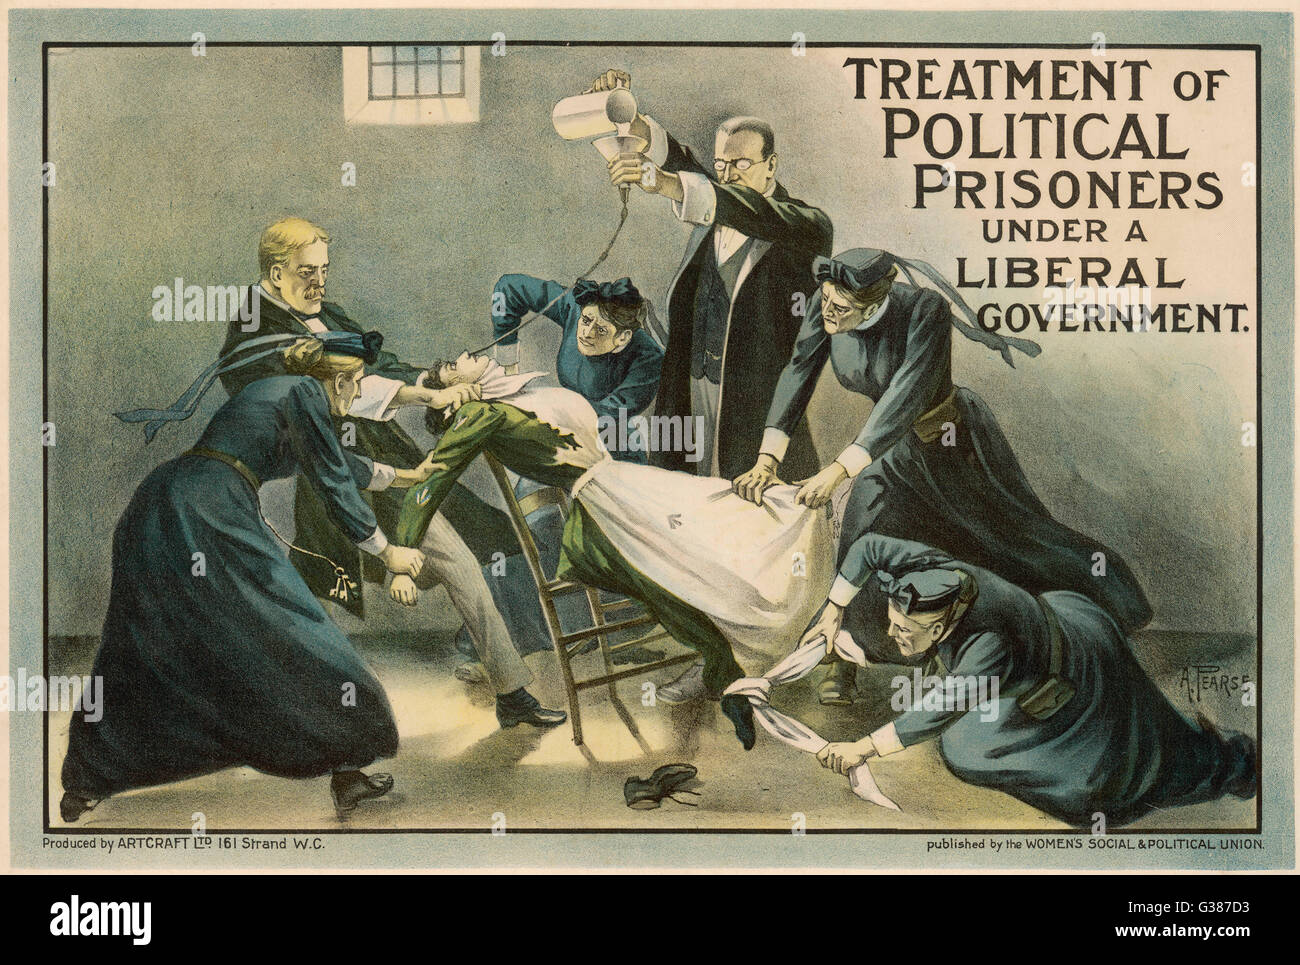 treatment of women in society in British society credited the new patriotic roles women played as earning them the vote in 1918 however, british historians no longer emphasize the granting of woman suffrage as a reward for women's participation in war work.